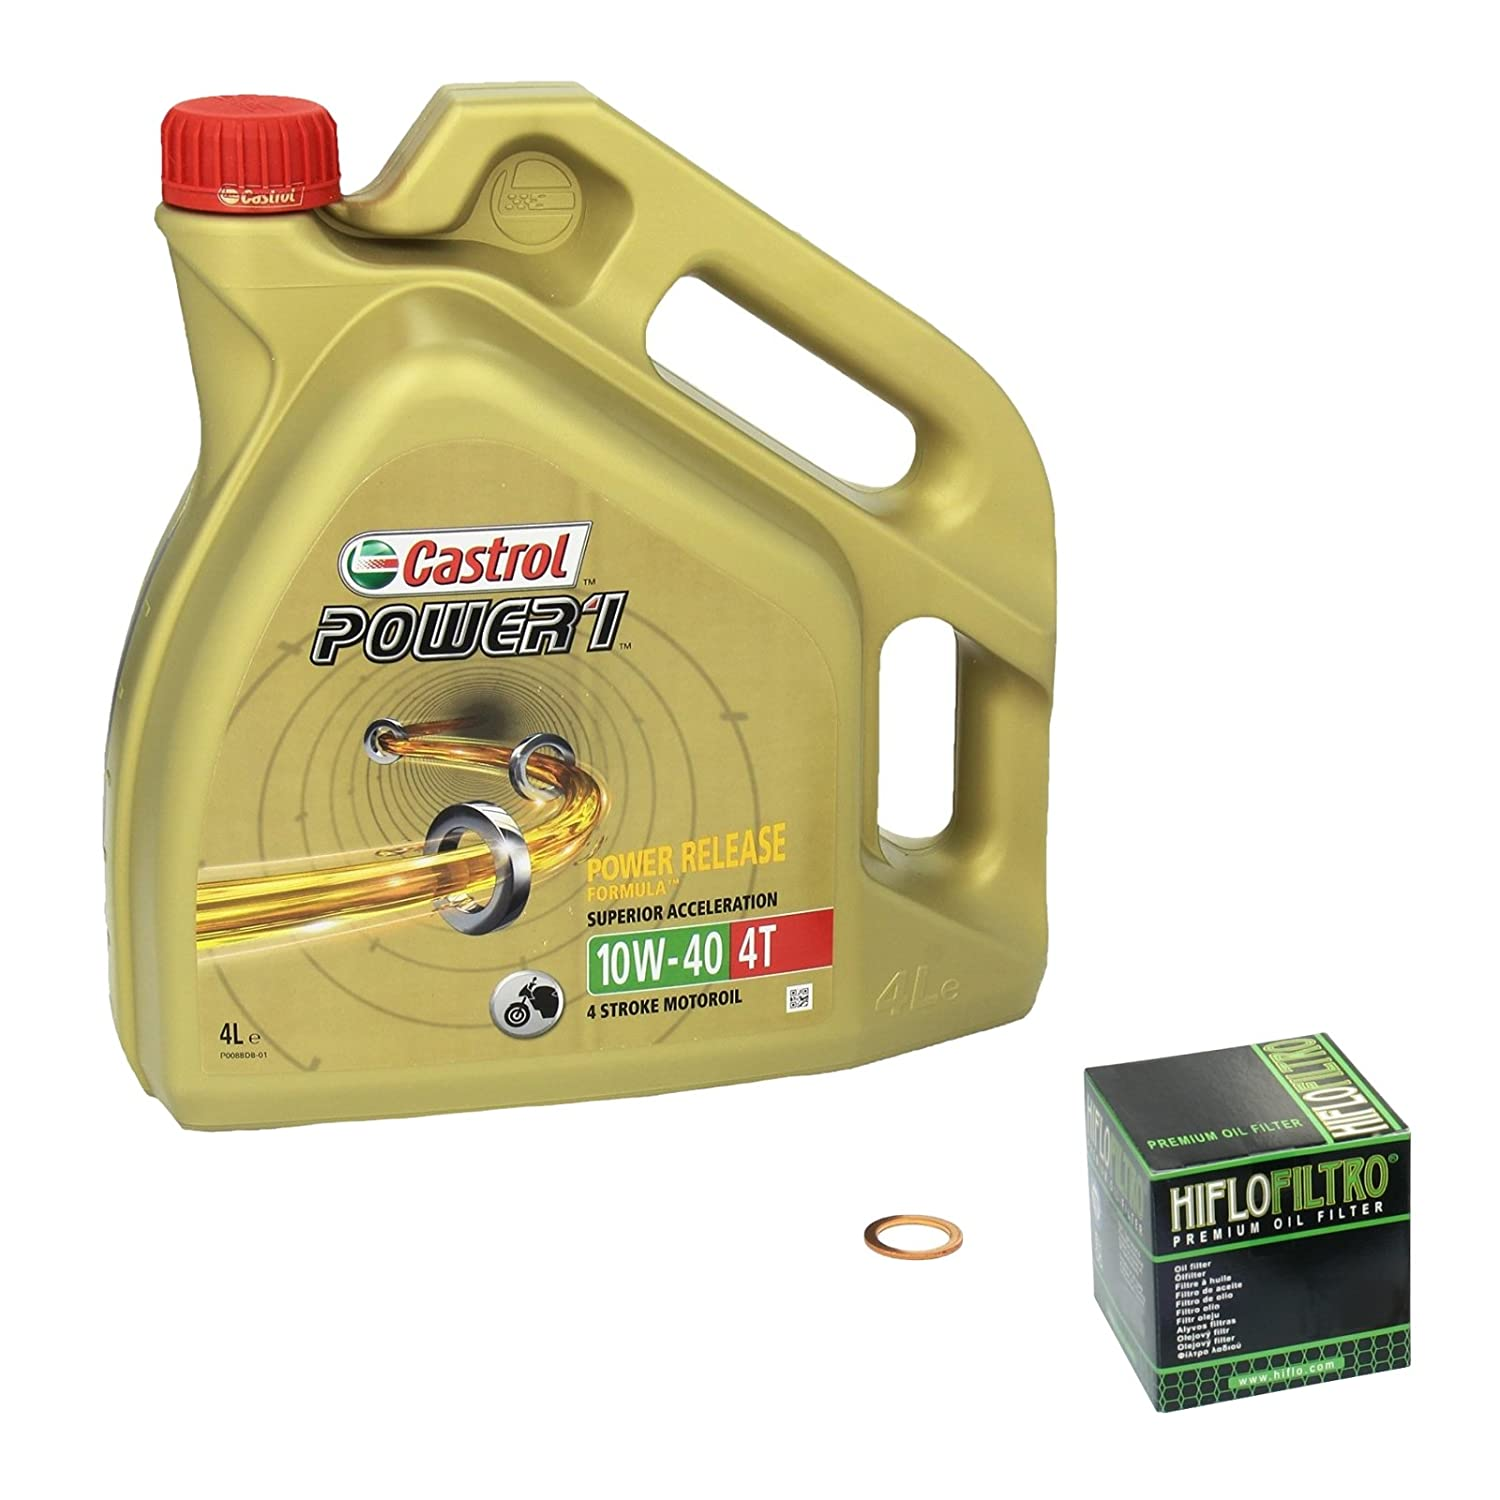 Castrol POWER1 (10W - 40 Oil Filler Kit for Yamaha XV 1000 Virago Built 86-88 HiFlo oil and oil Shaft Seal-Crankshaft 4055029078222